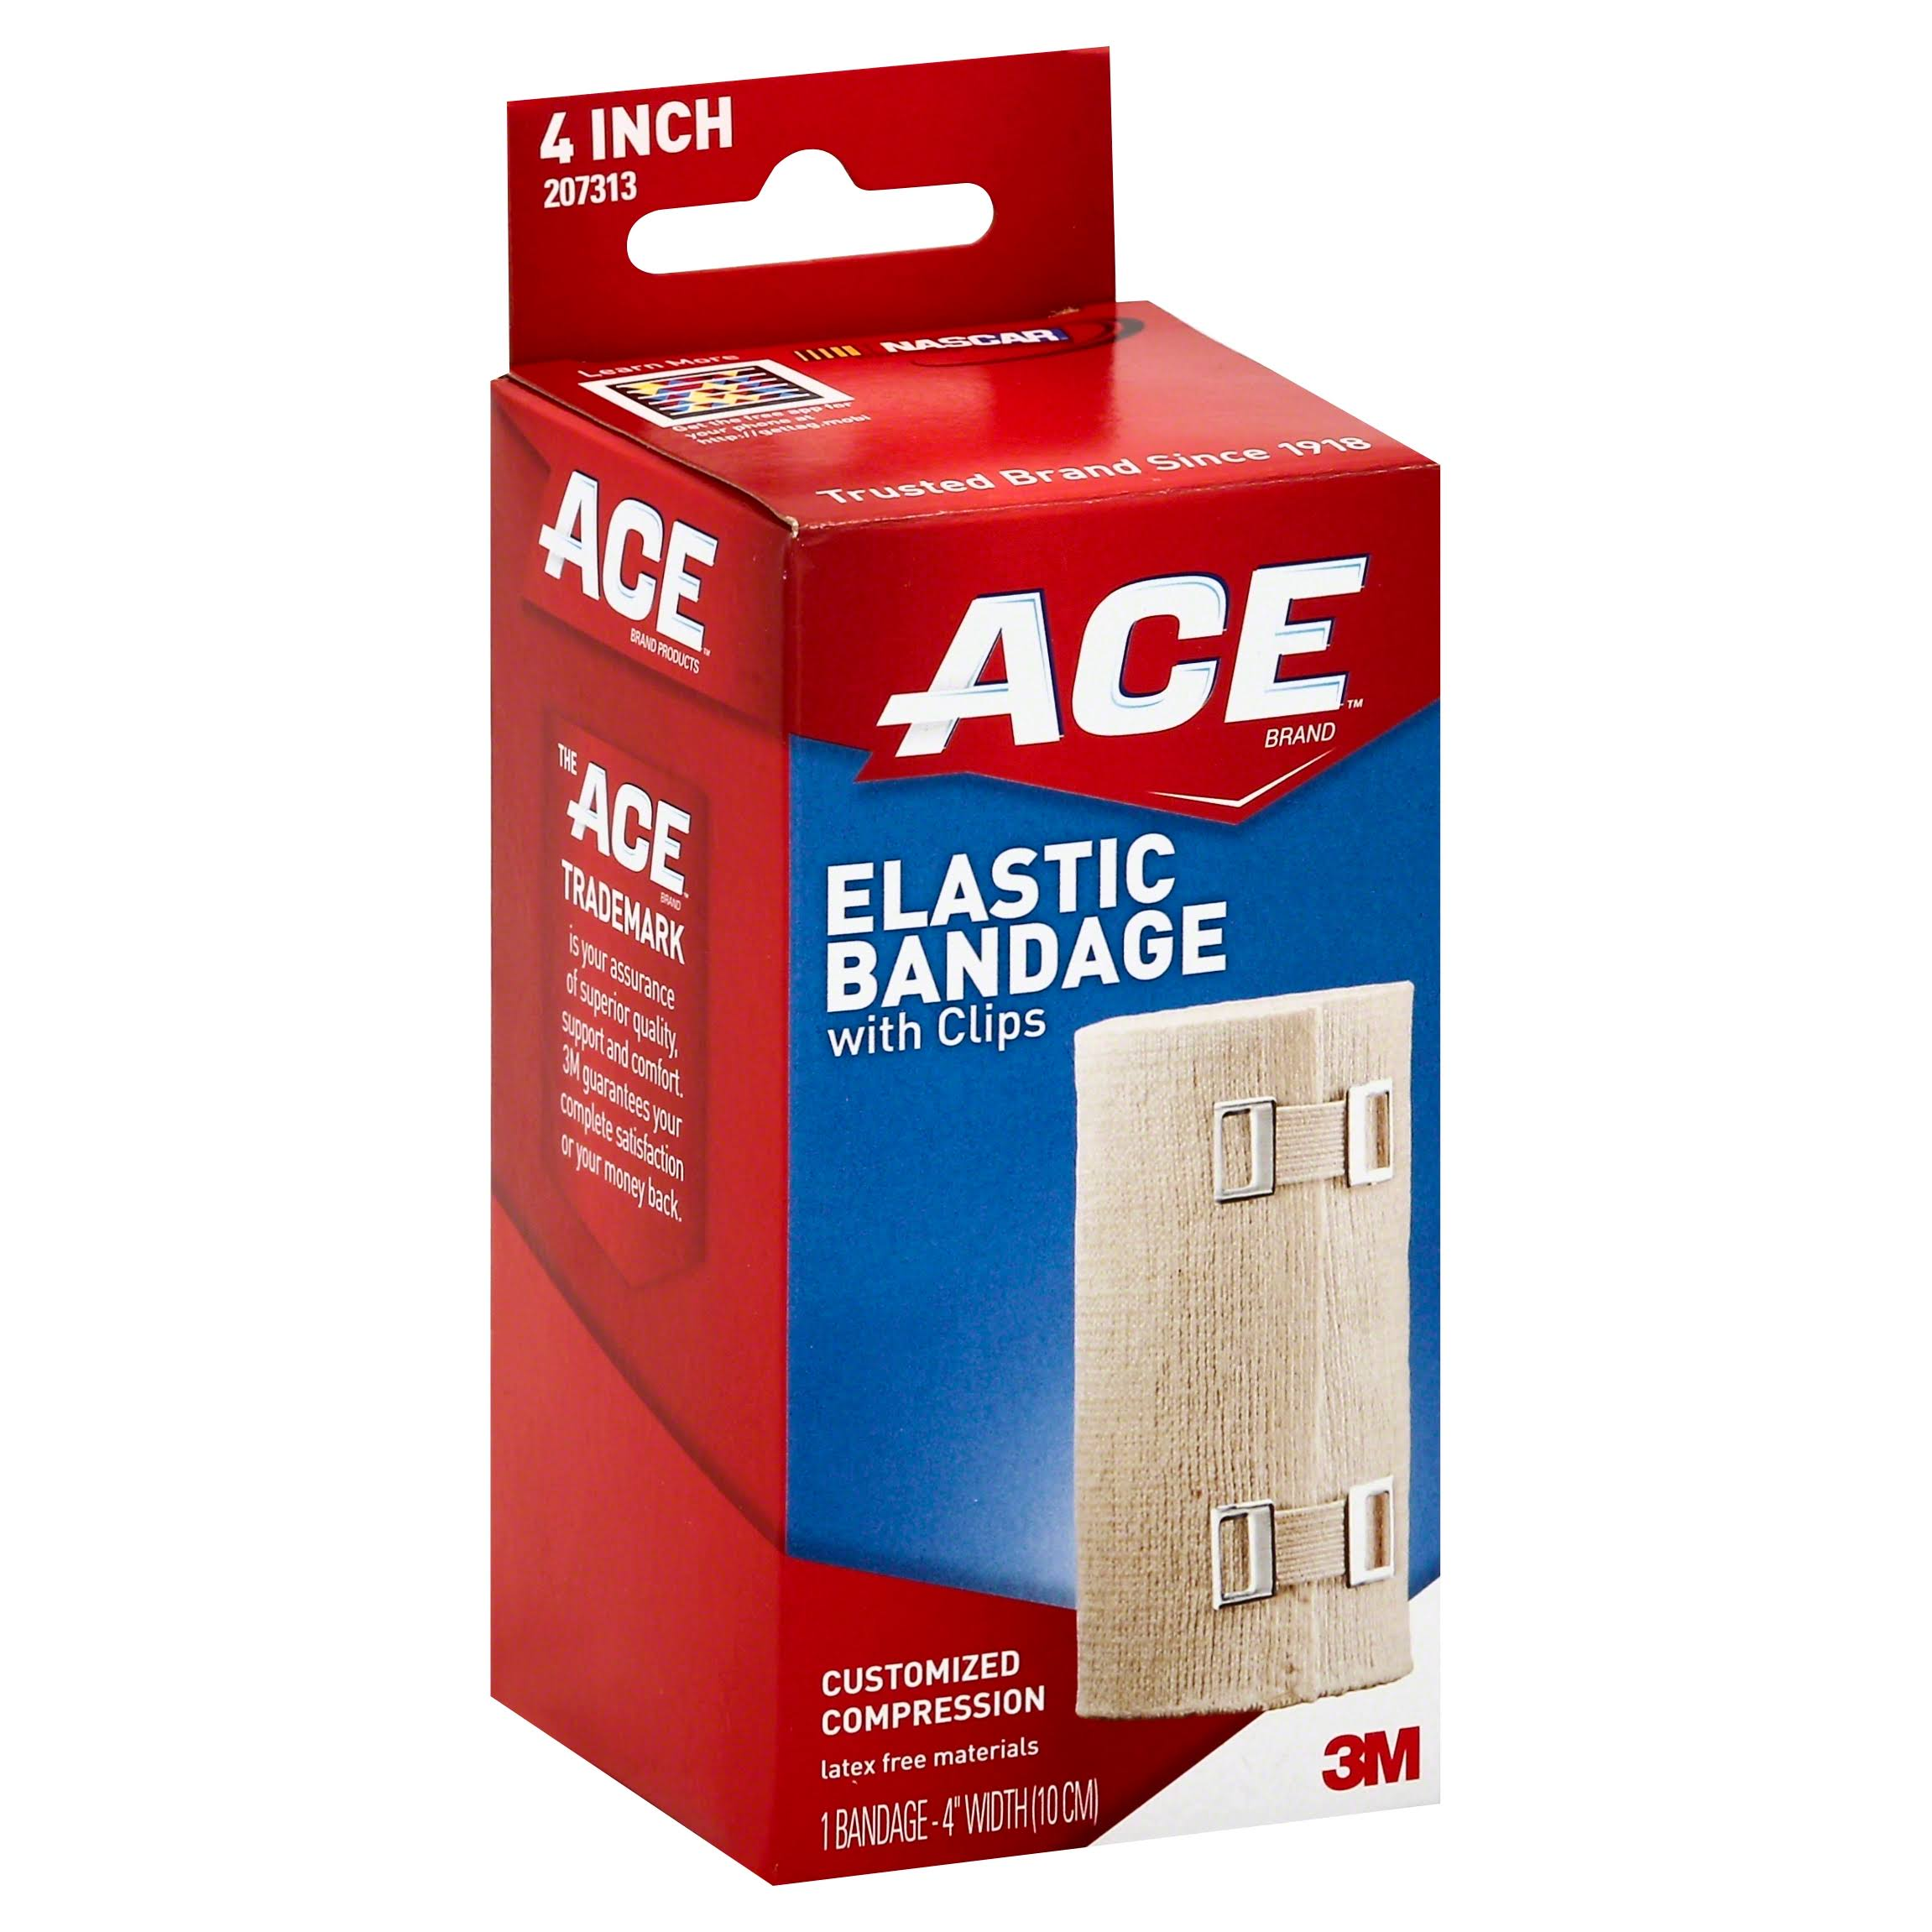 Ace 3M Elastic Bandage - with Clips, 4""